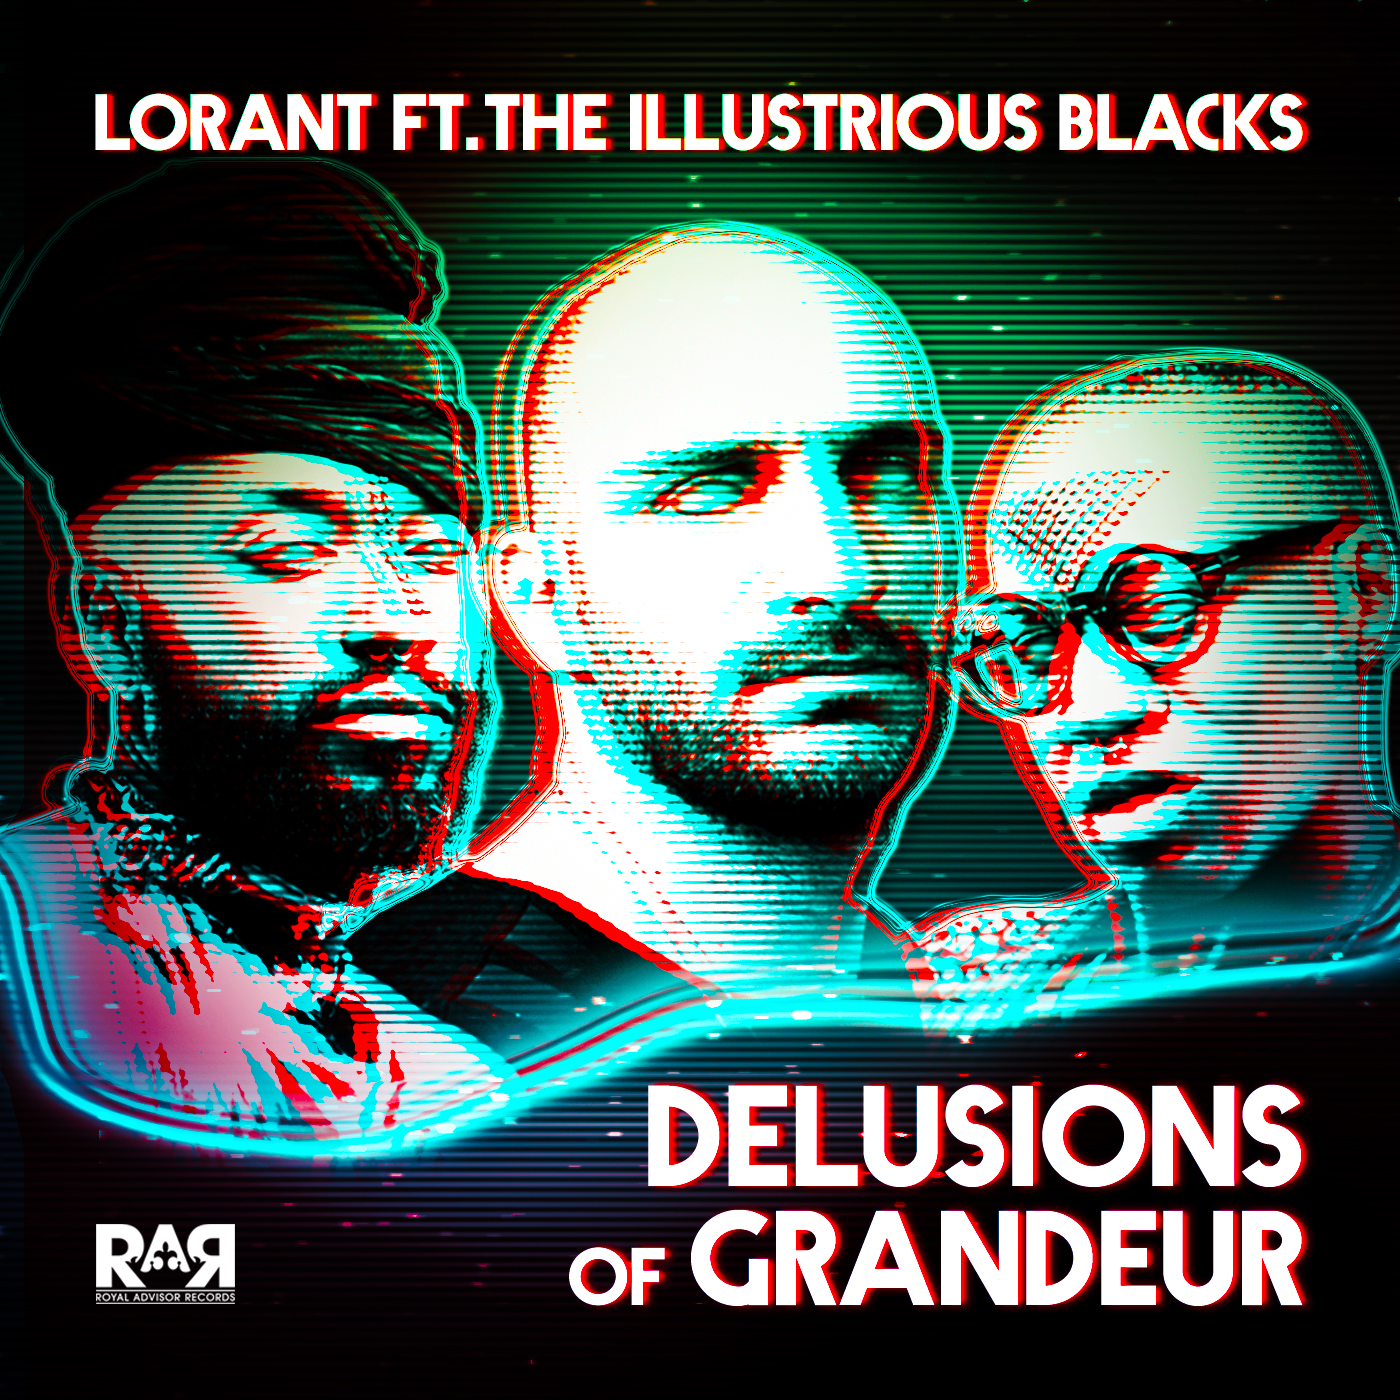 Delusions of Grandeur 5